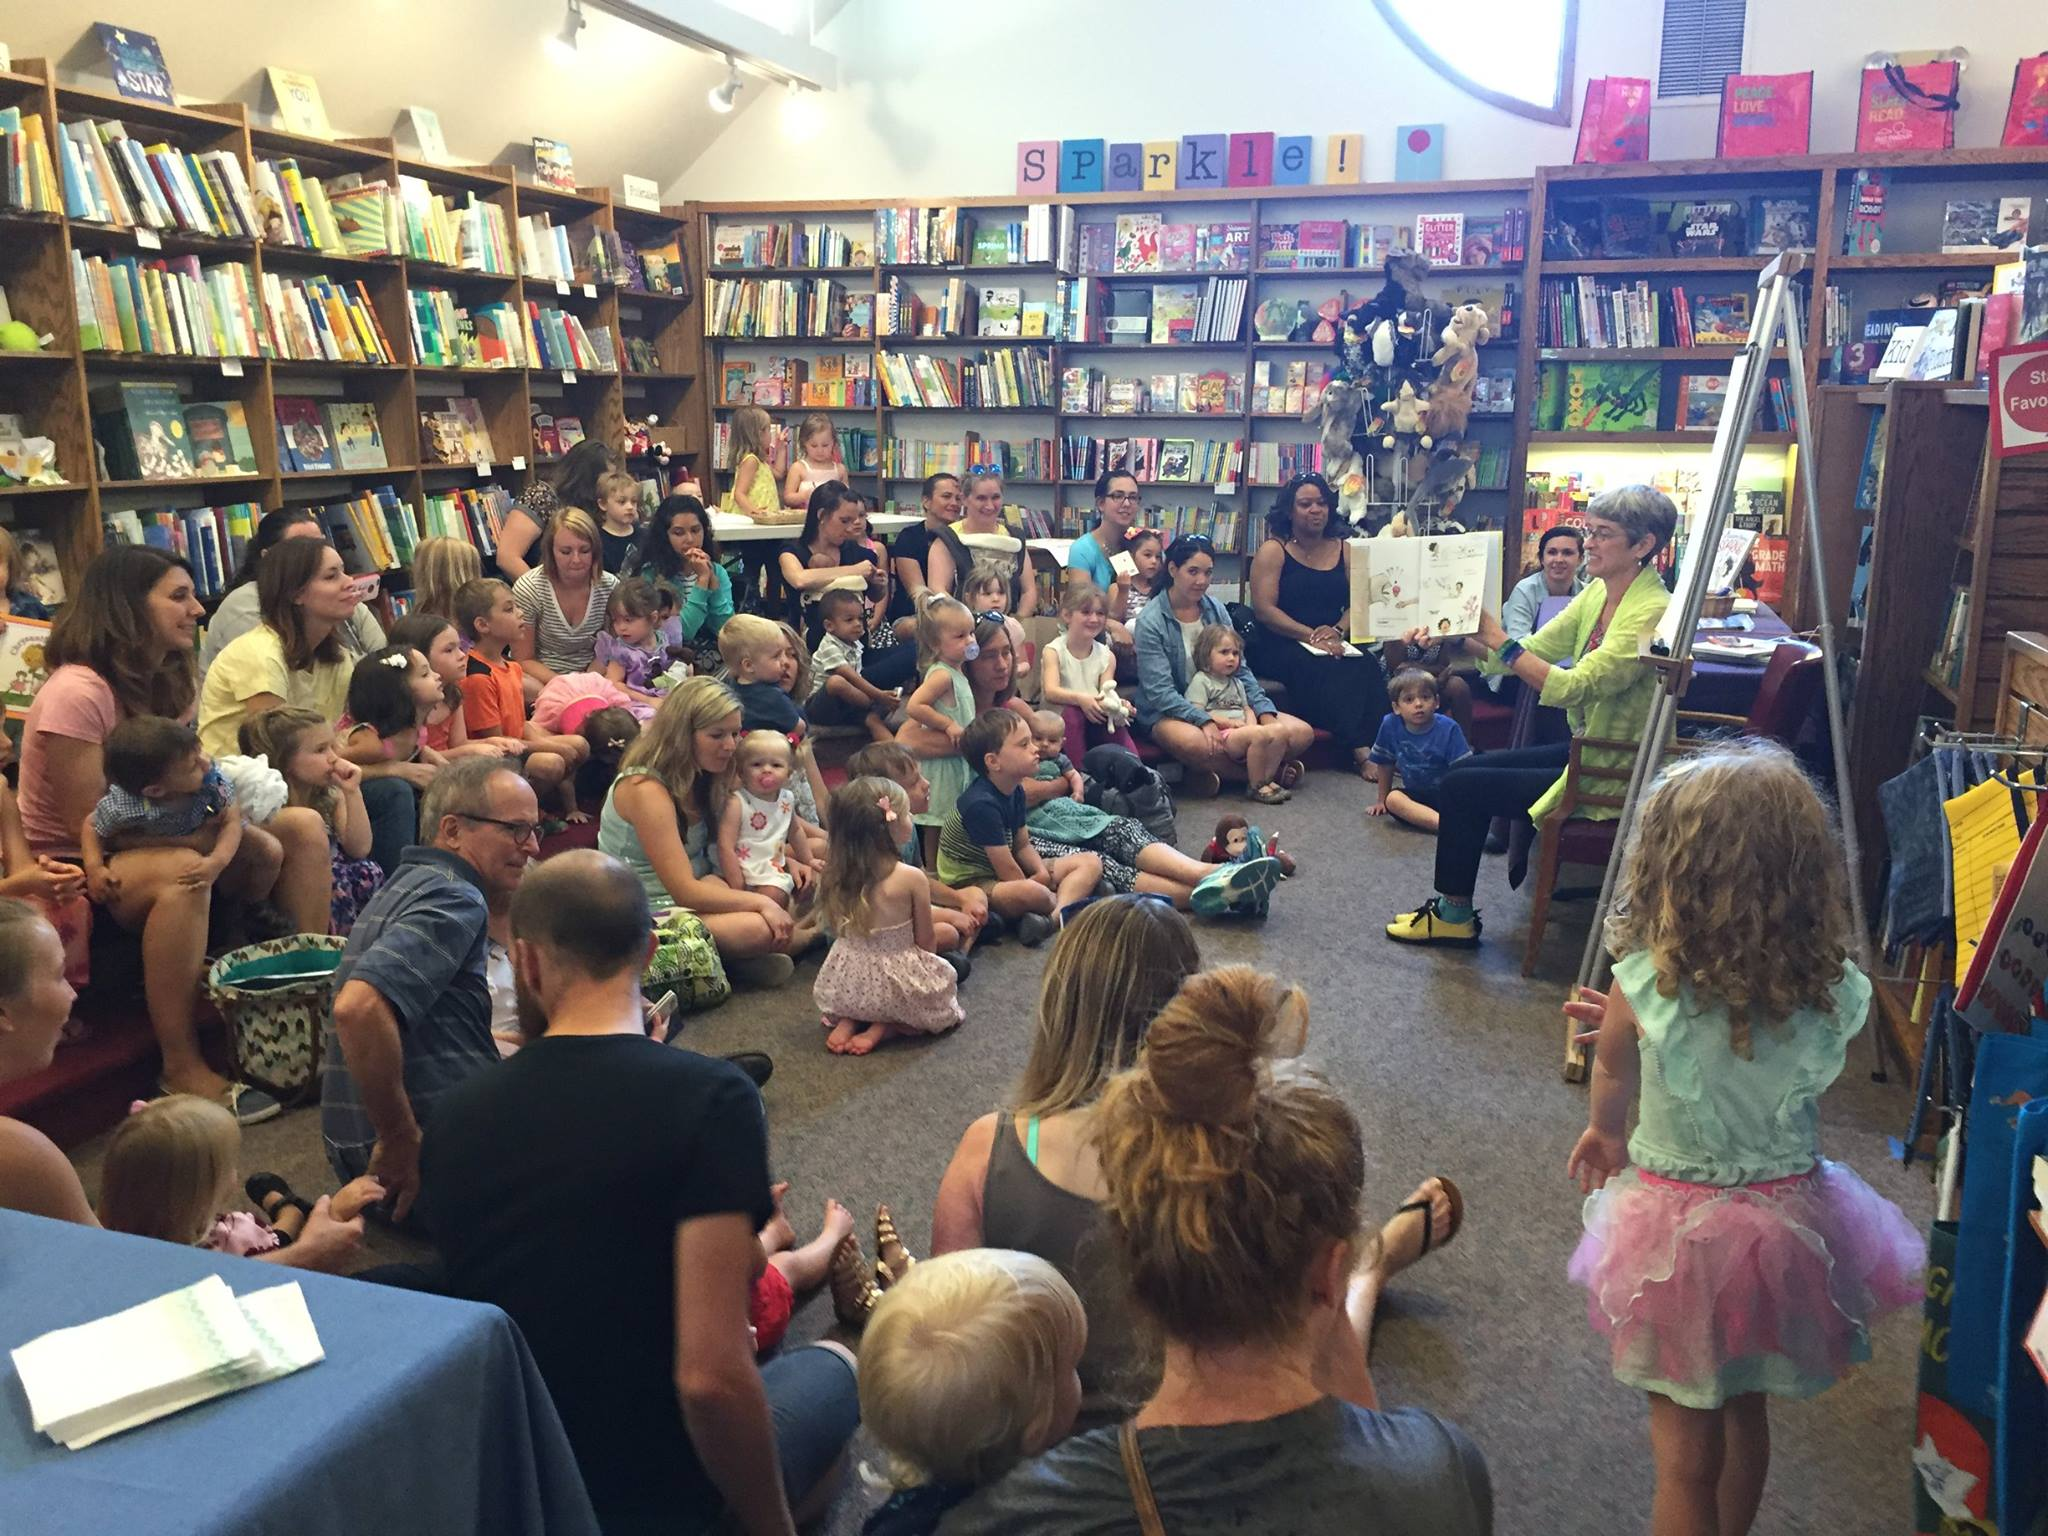 Saint Paul community storytime